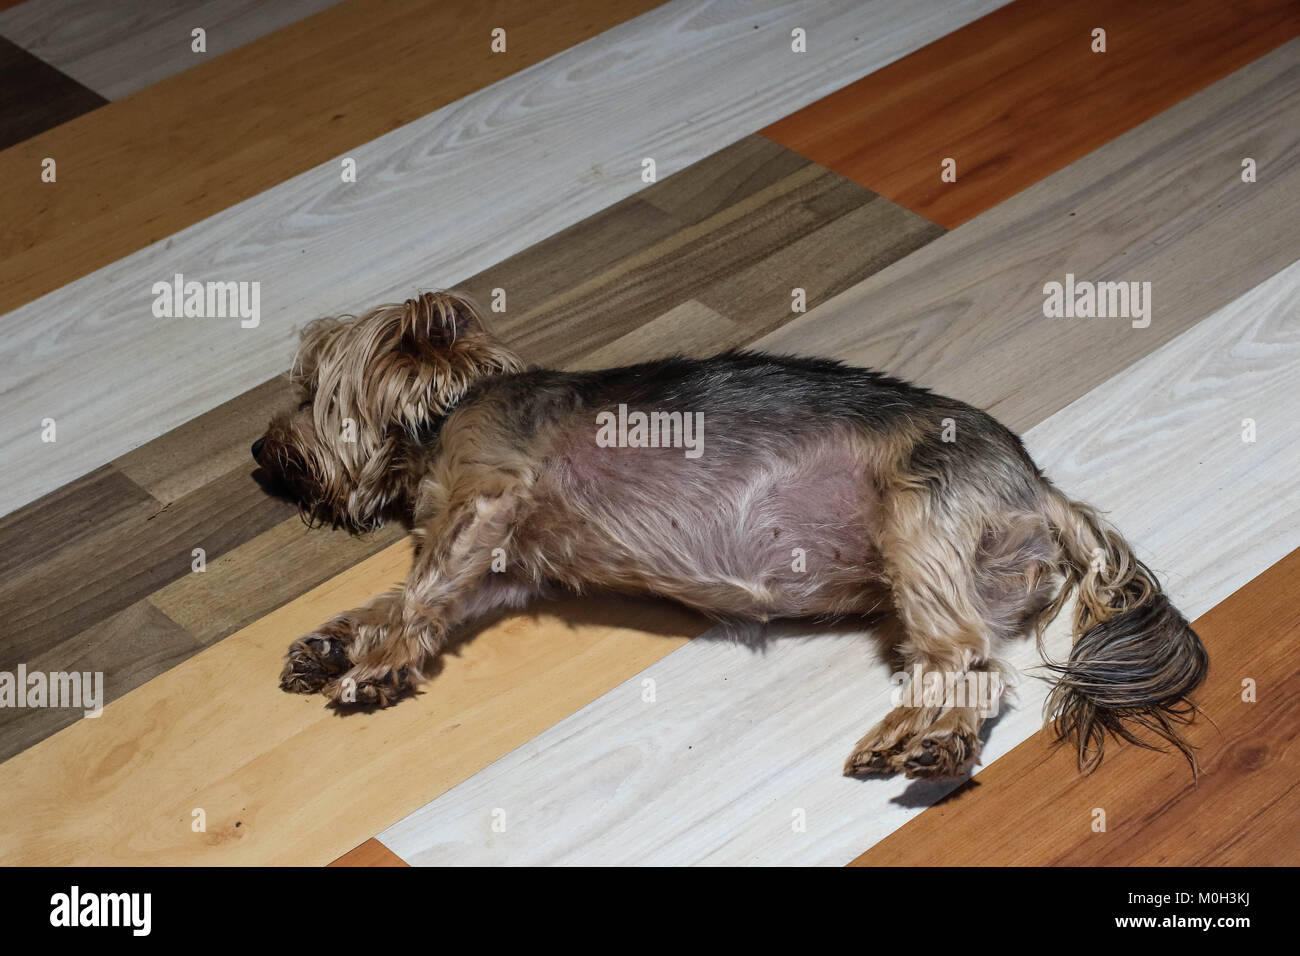 Small brown dog lies on a luxury interior wooden floor, image in landscape format with copy space - Stock Image